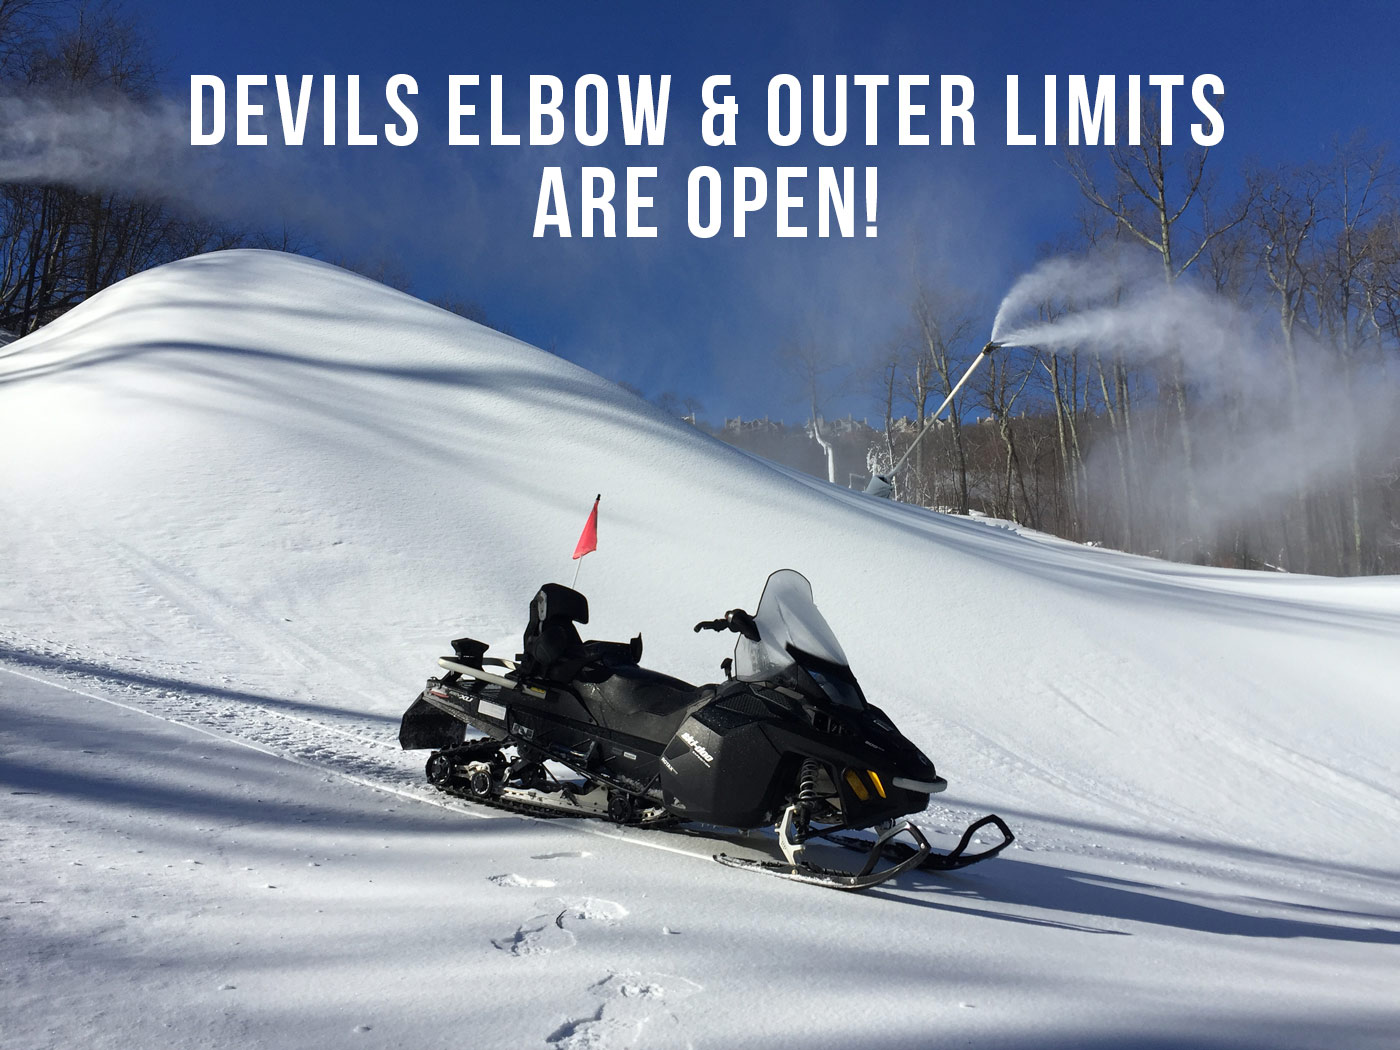 devils elbow and outer limits ski trails